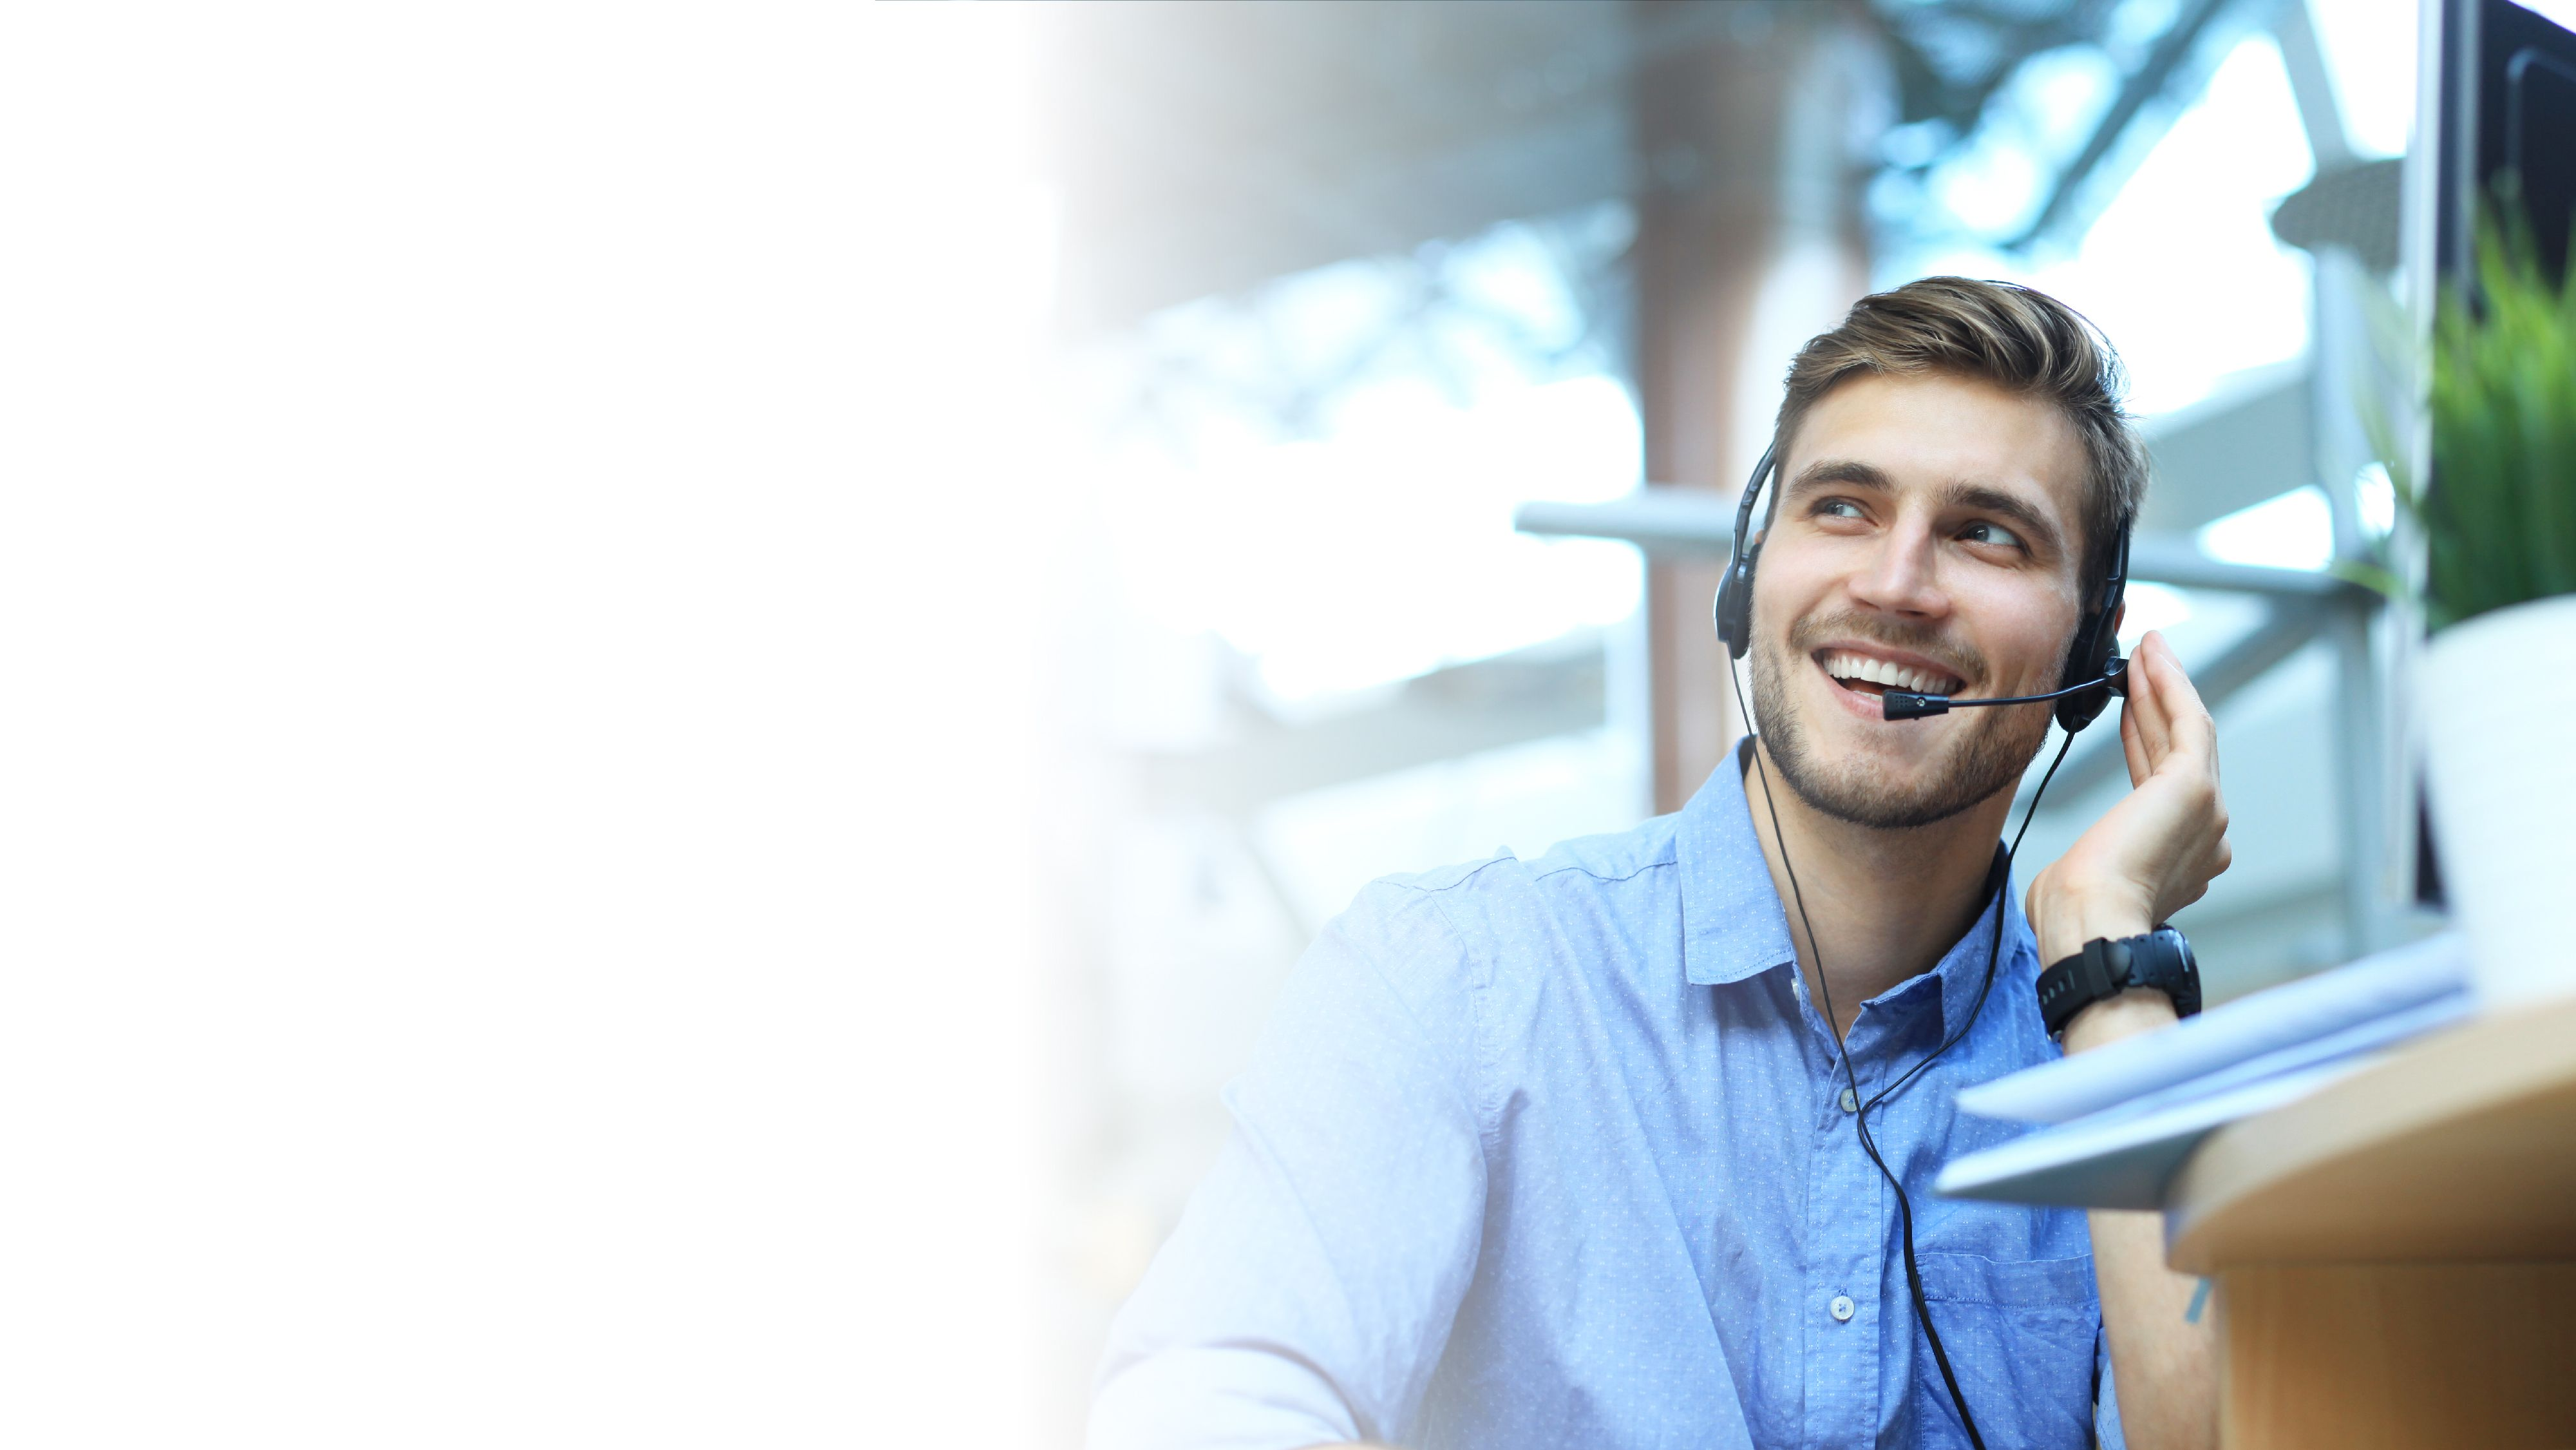 Digital Product & Technical Support, Customer ssupport